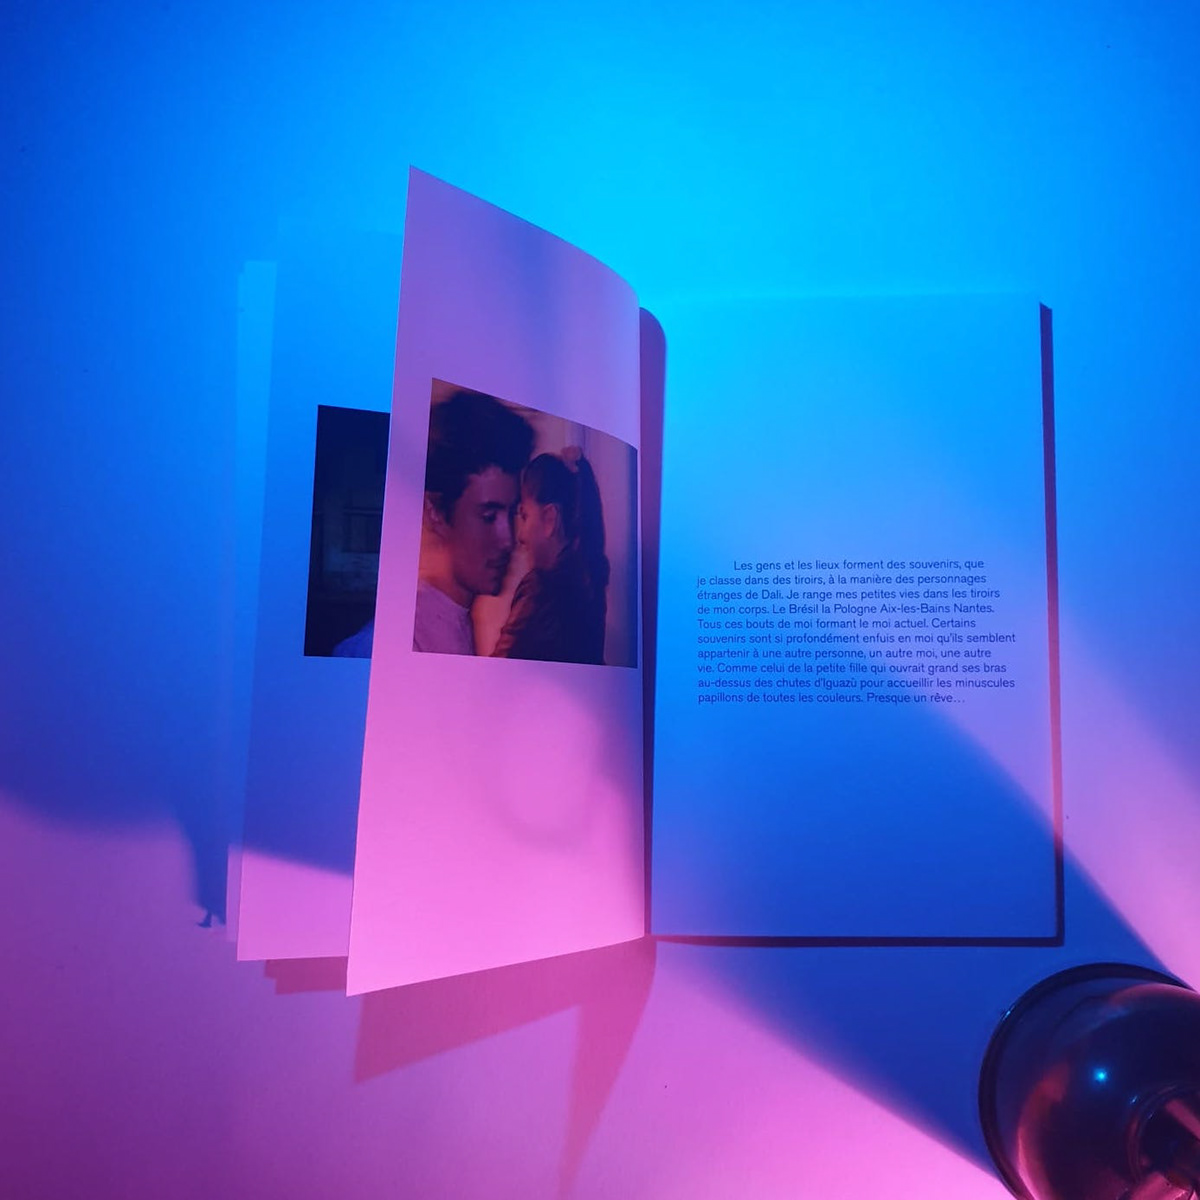 Bookbinding Photography  self-reflection essay Autobiography edition neon lights